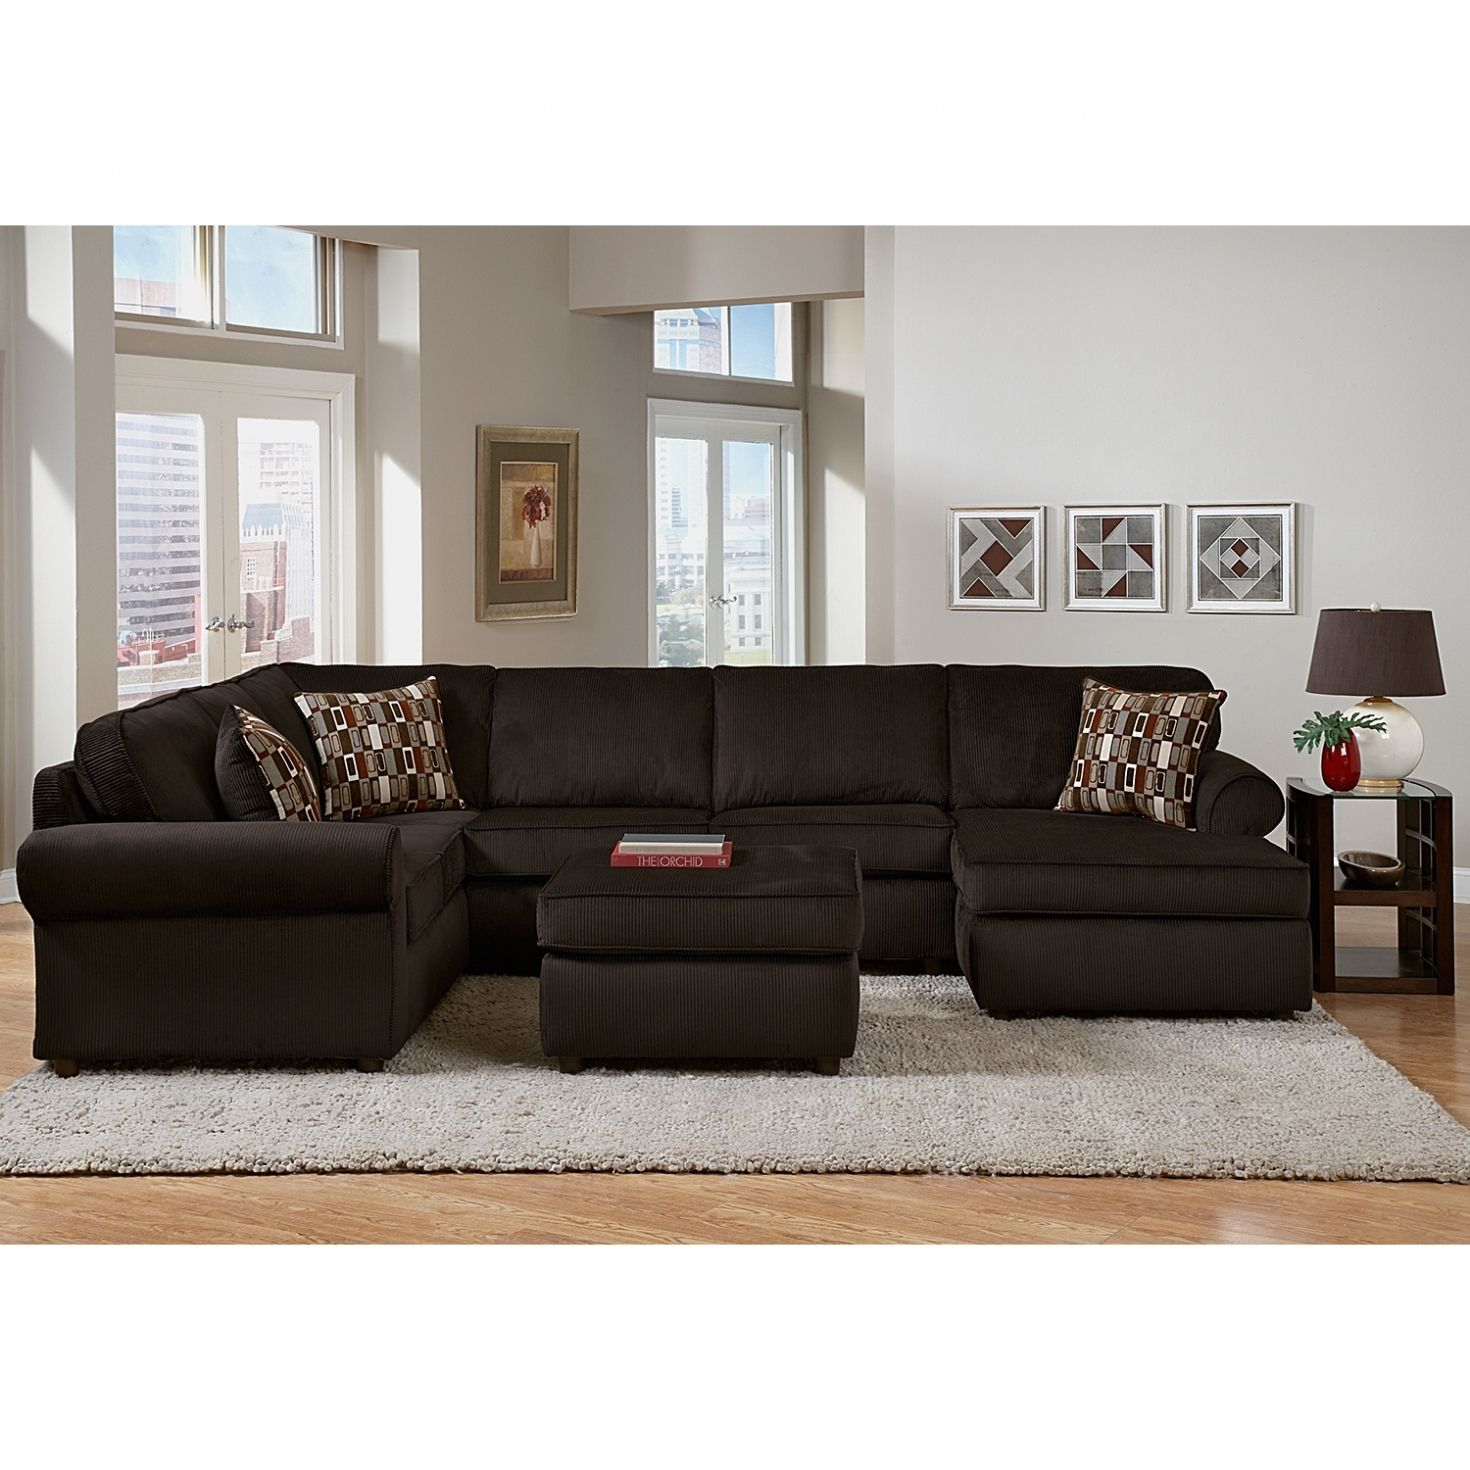 10 Inspirations Value City Sectional Sofas Sofa Ideas City Living Room Couches For Sale Contemporary Sofa Bed